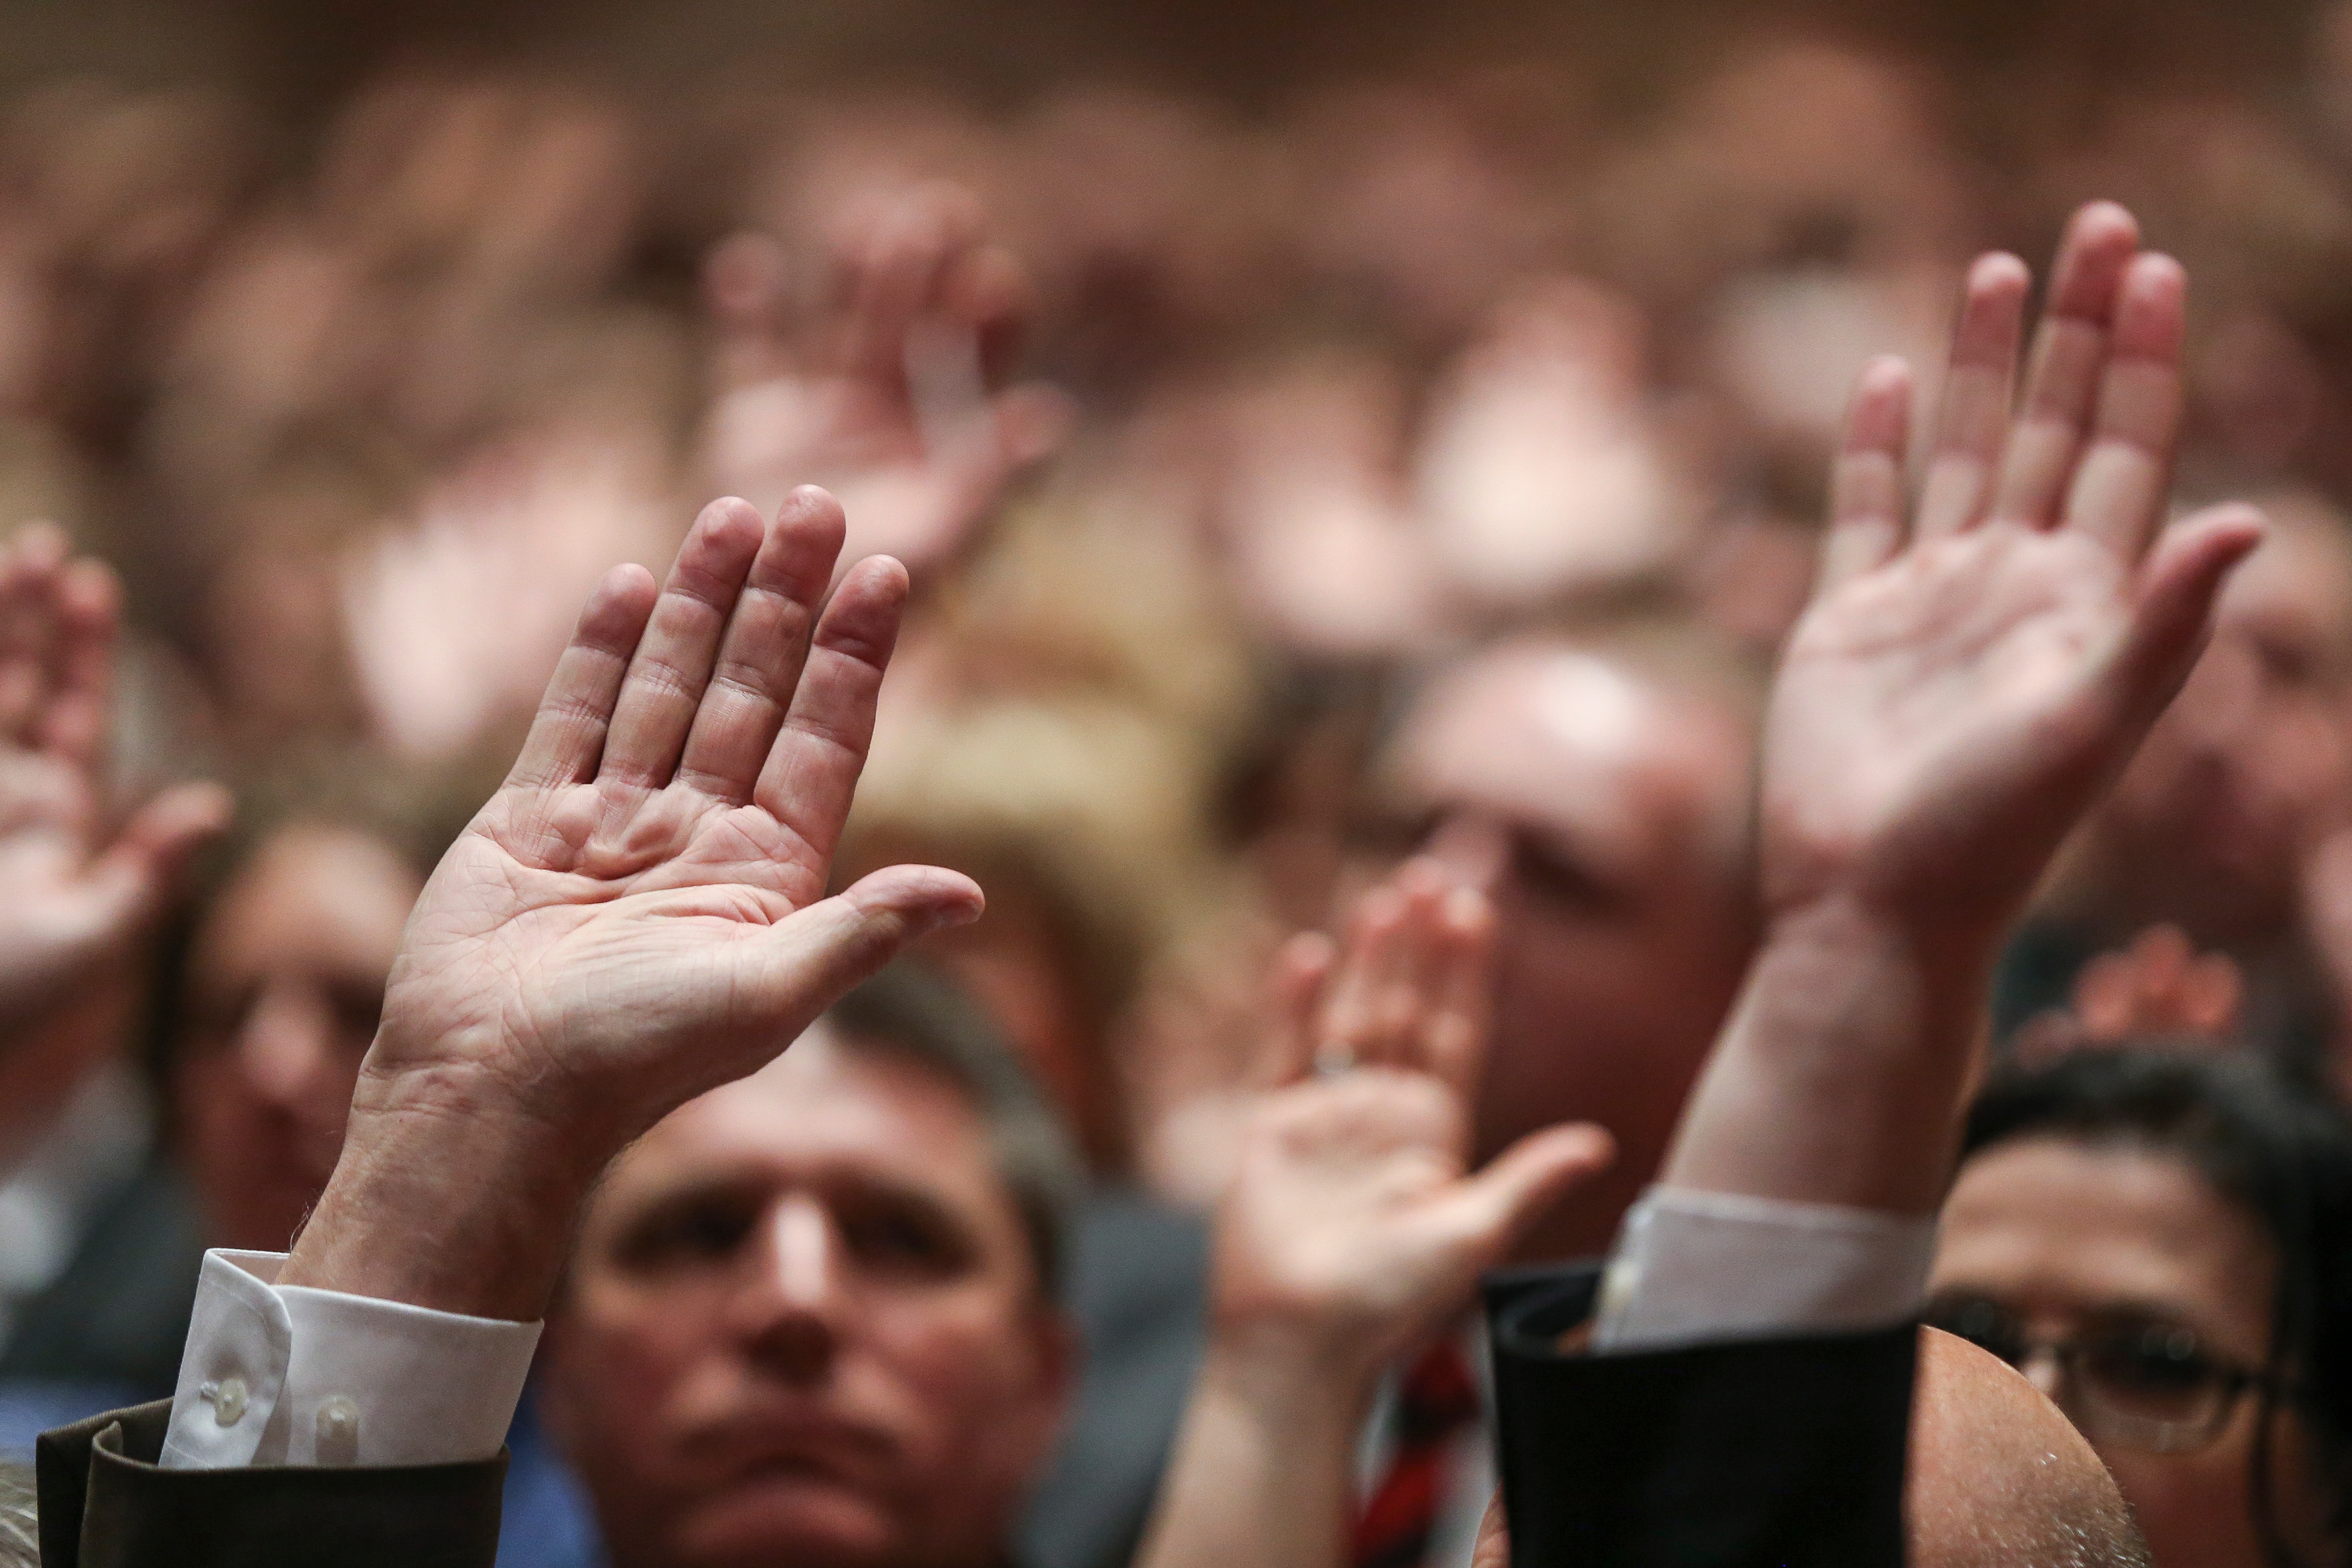 Conferencegoers raise their hands to sustain church leadership during the Saturday afternoon session of the 188th Annual General Conference of the Church at the Conference Center in Salt Lake City on March 31, 2018.